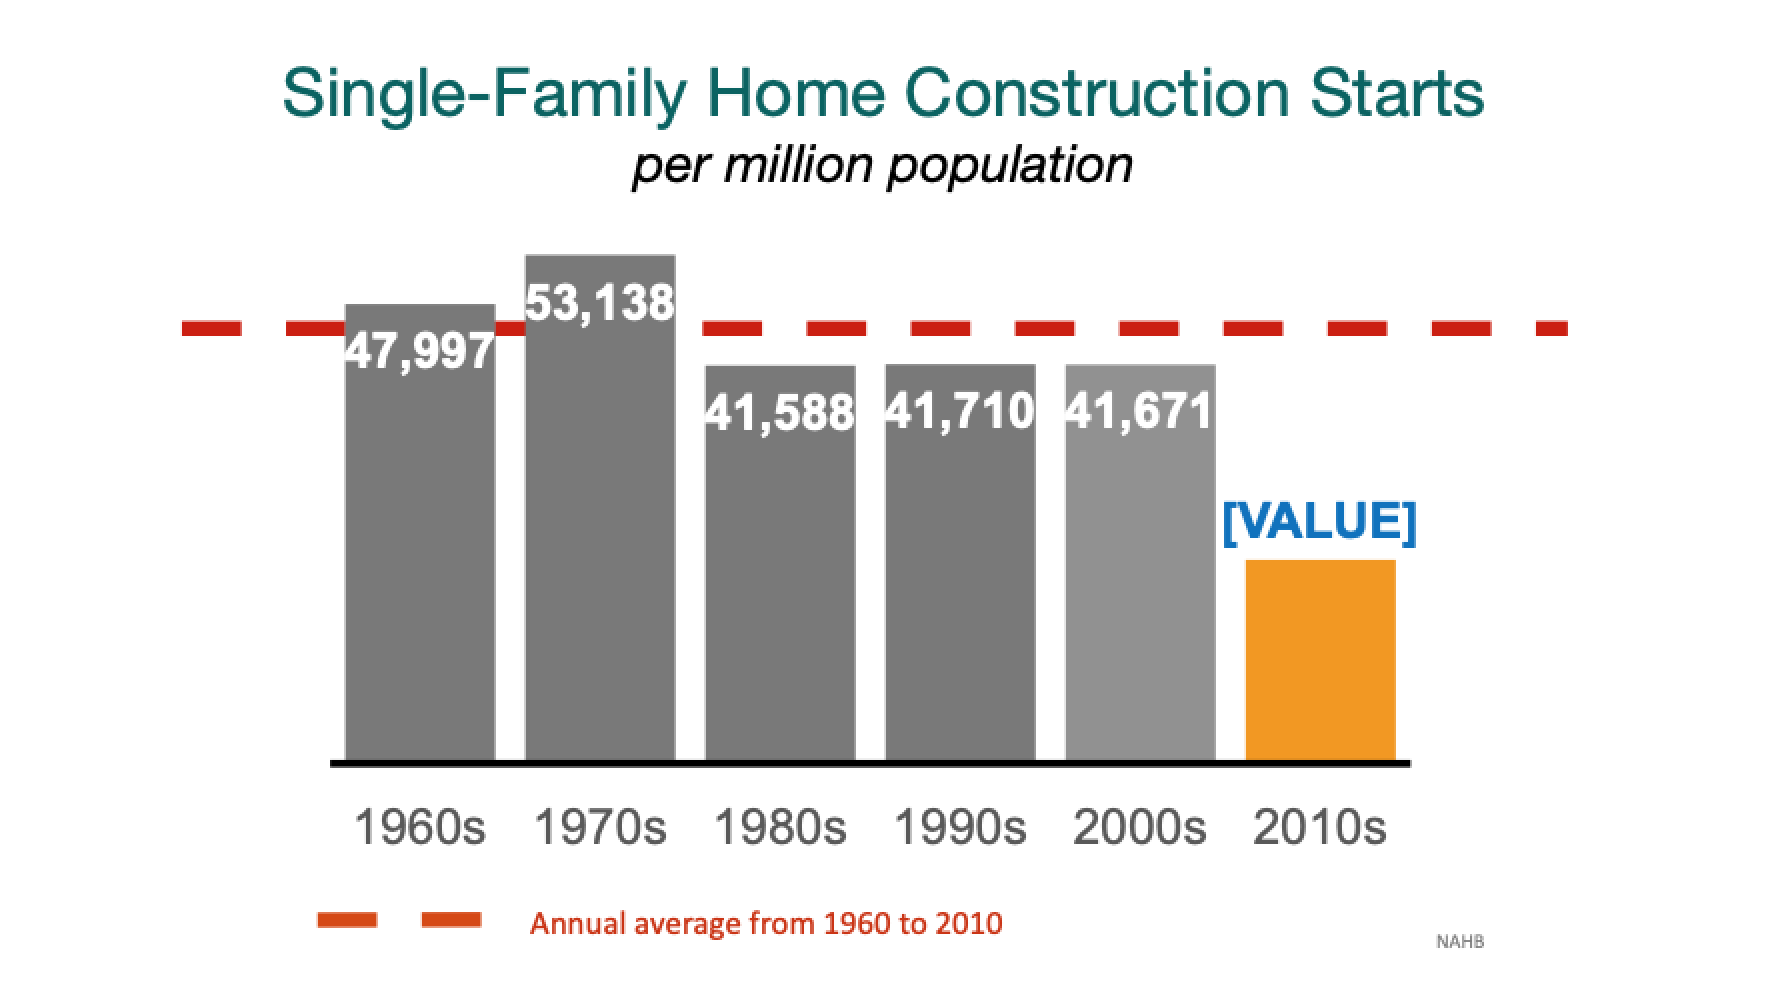 Single Family Homebuilding Starts 1960-2020